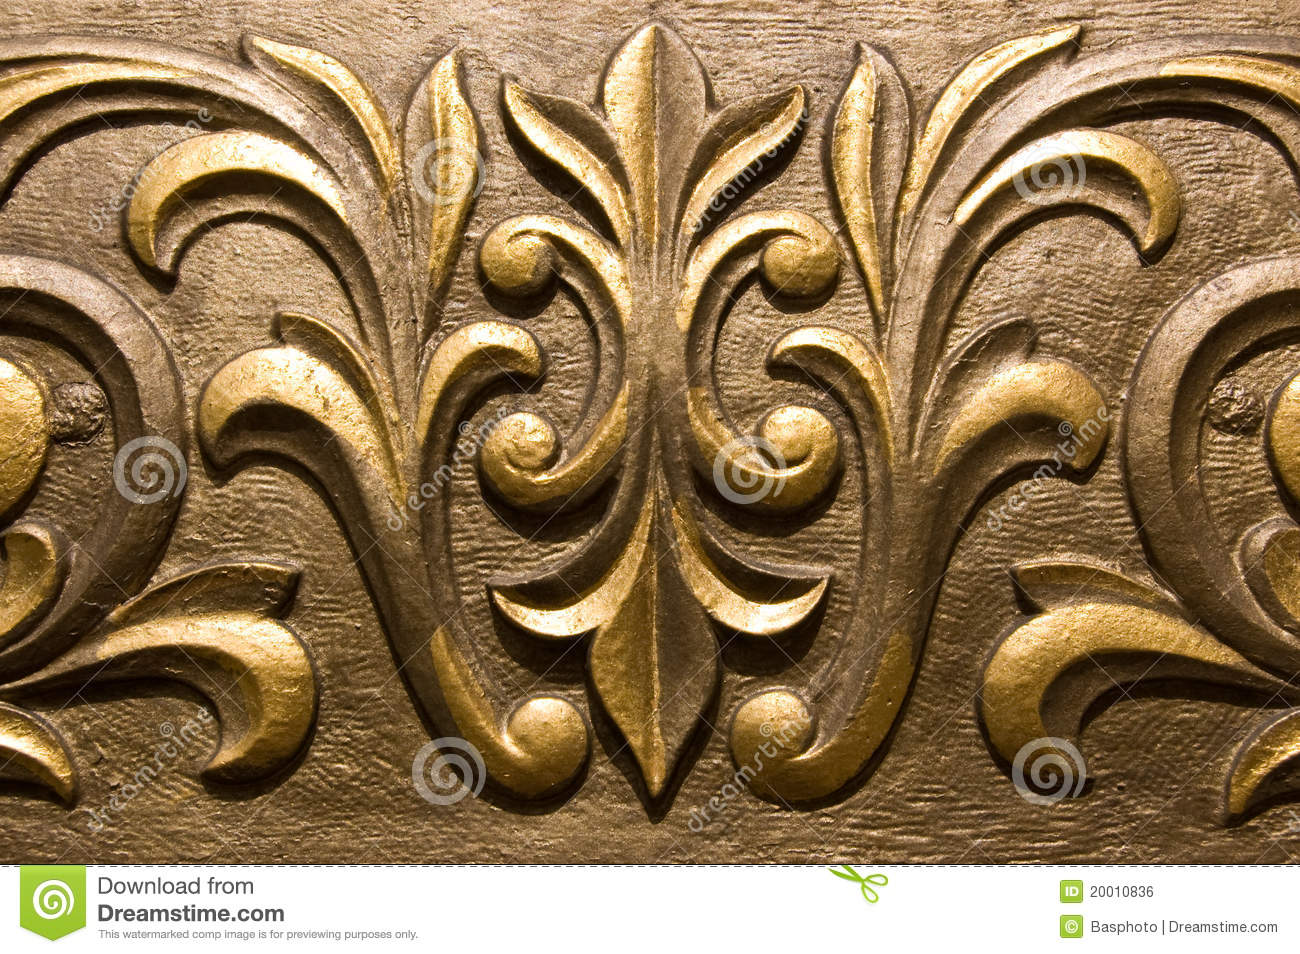 beach chair photo frame carex transport review gilded plaster moulding royalty free stock image - image: 20010836